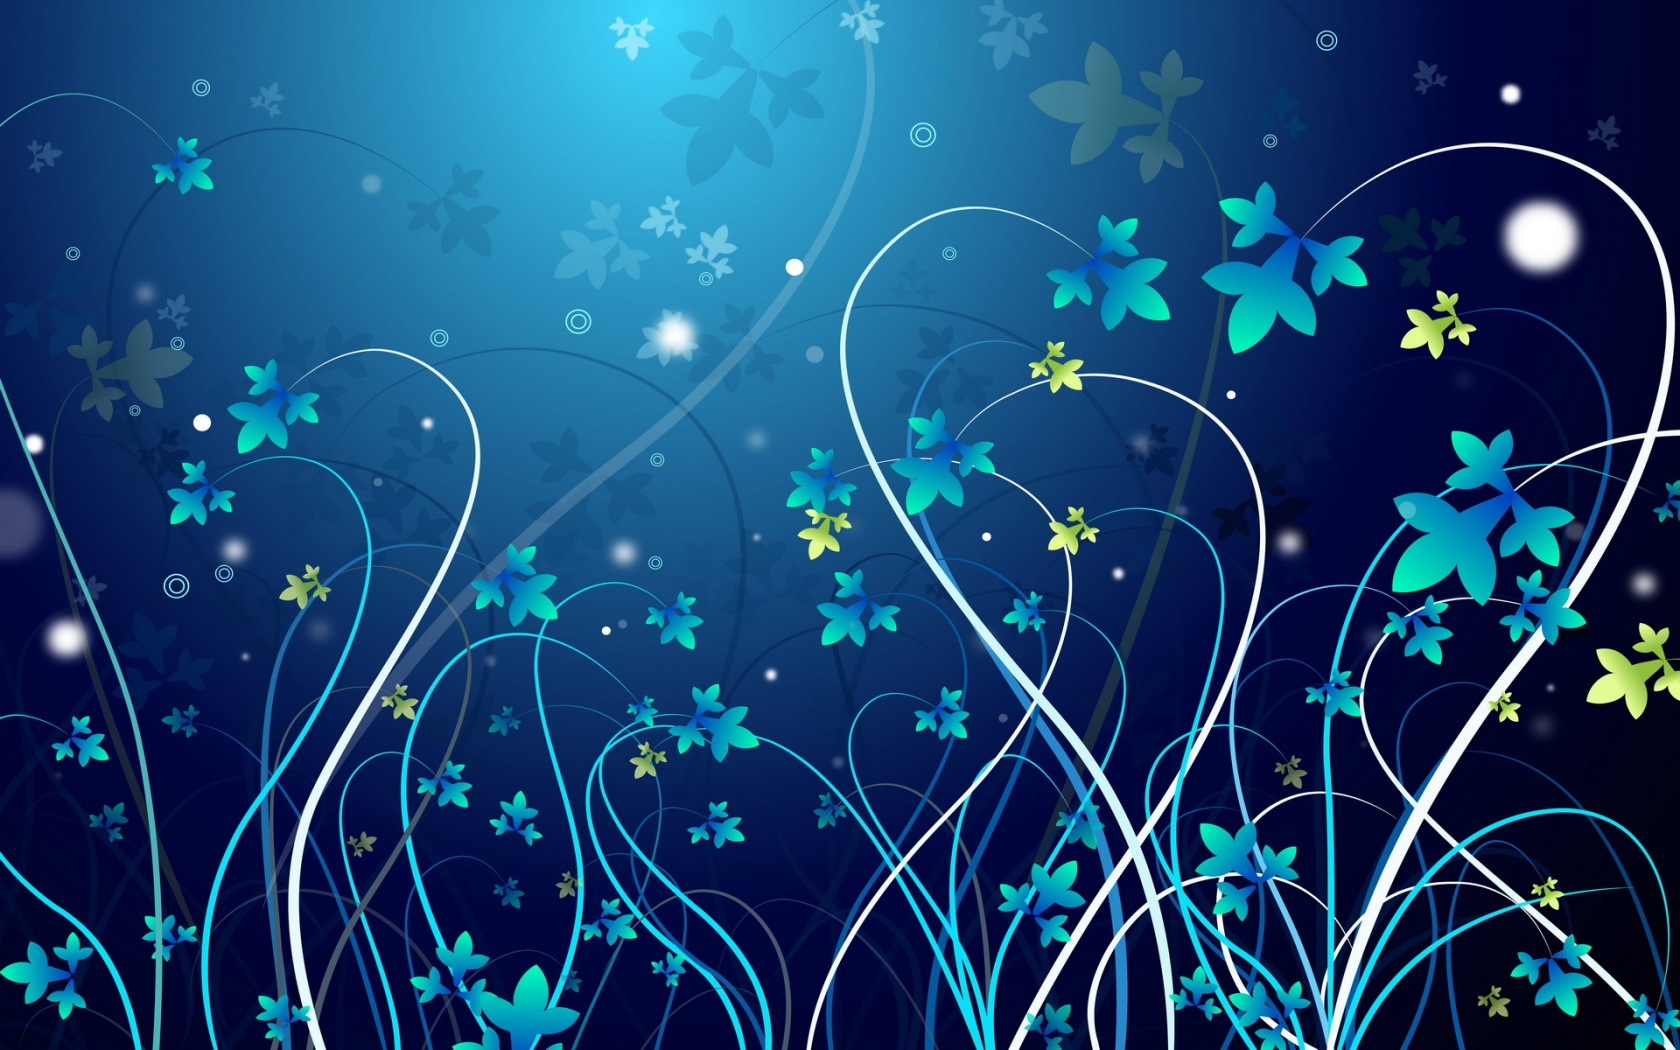 FLOWERS HD WALLPAPER BACKGROUNDSHDIMAGESSEARCH WALLPAPER wallpaper 1680x1050